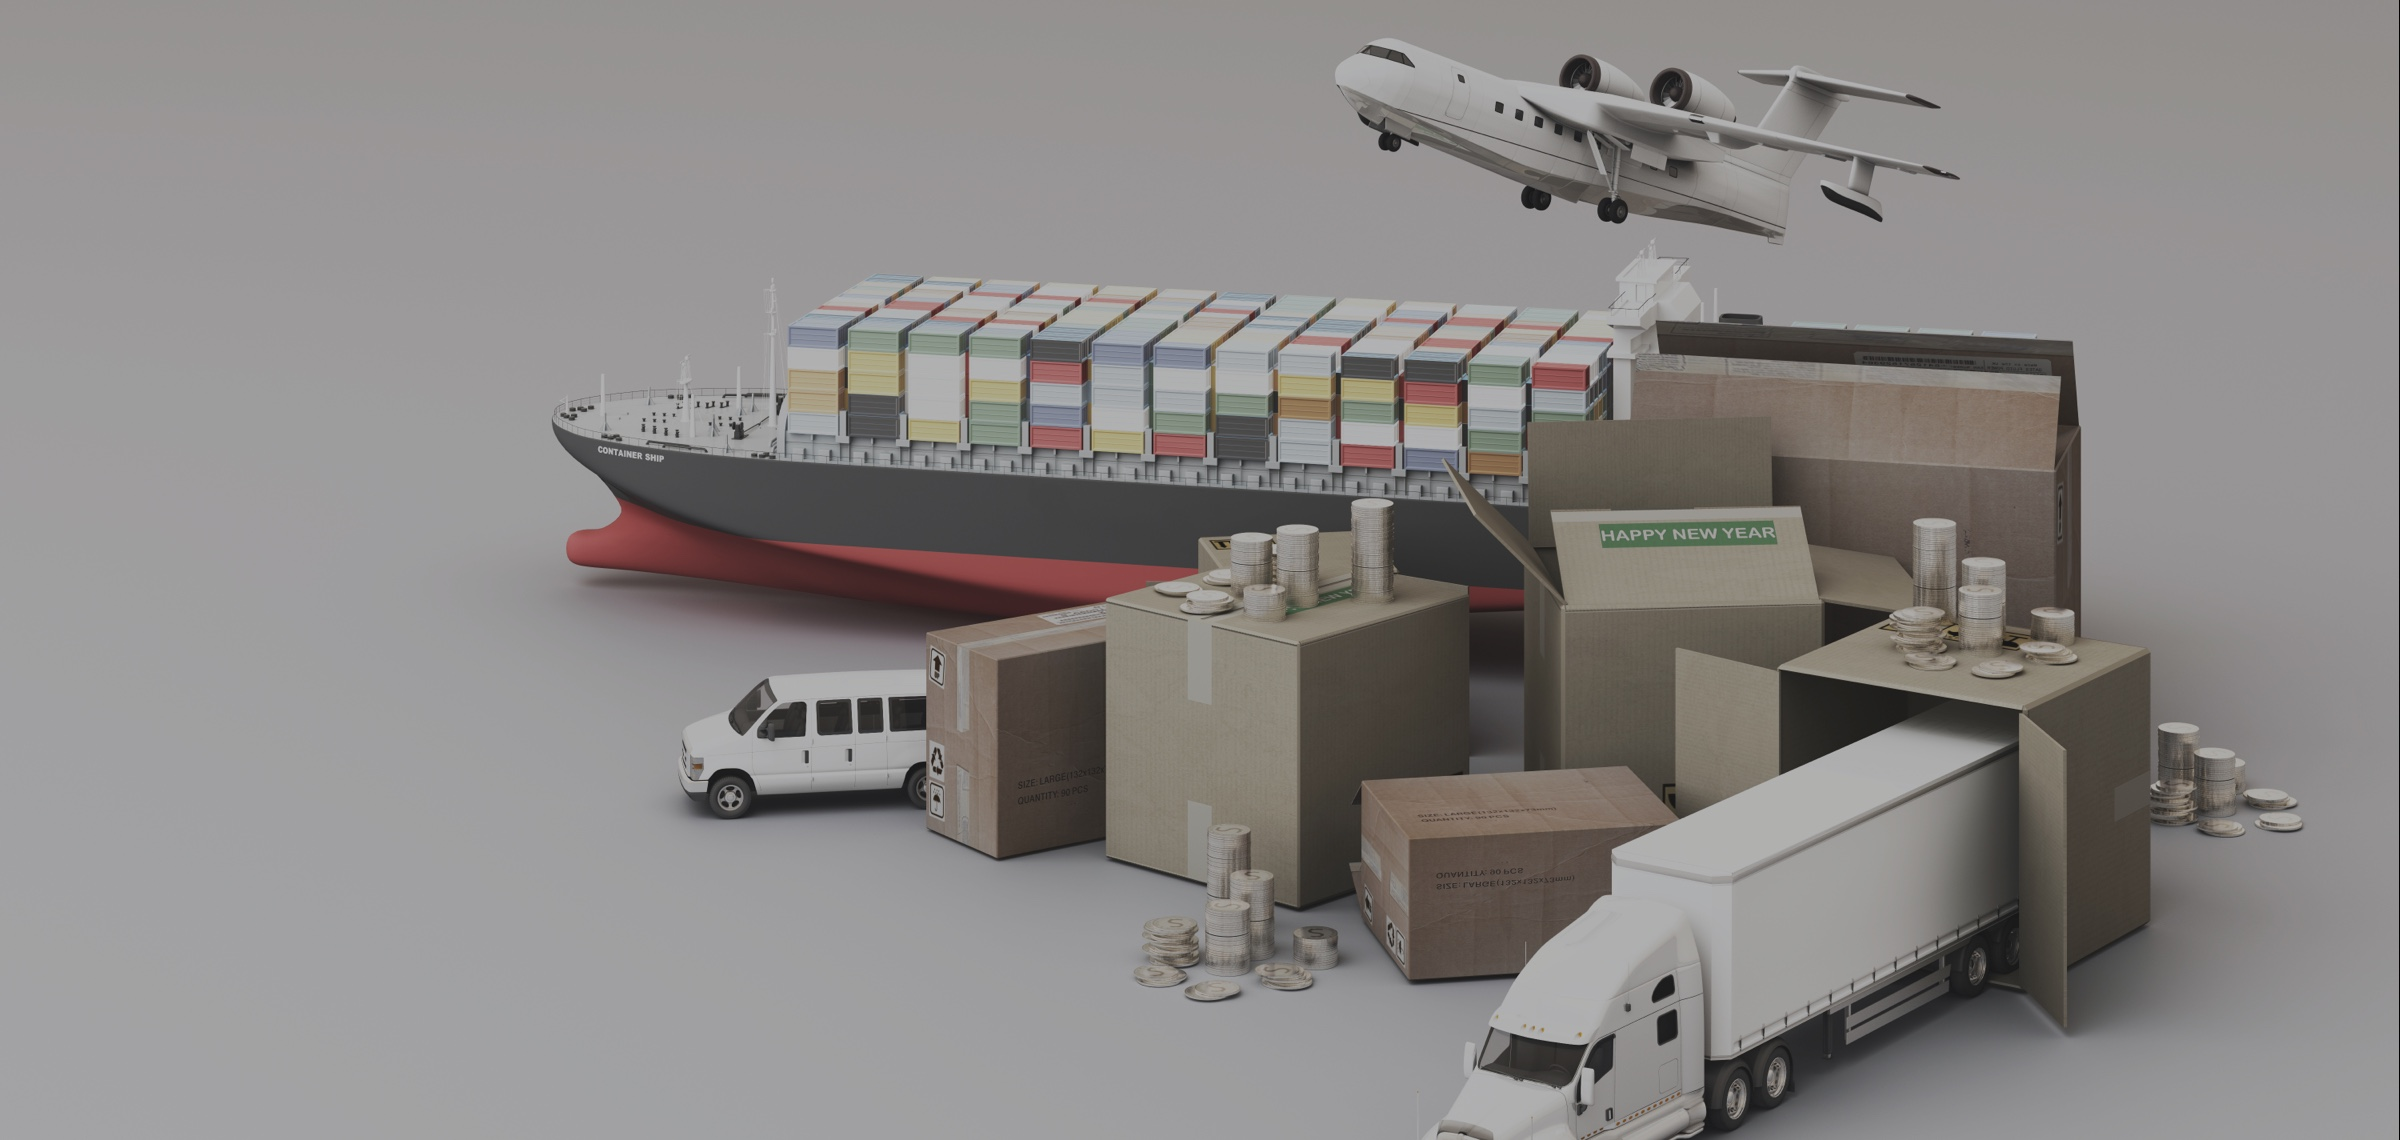 INCOTERMS 2020 AND THE DIFFERENCE BETWEEN 2010